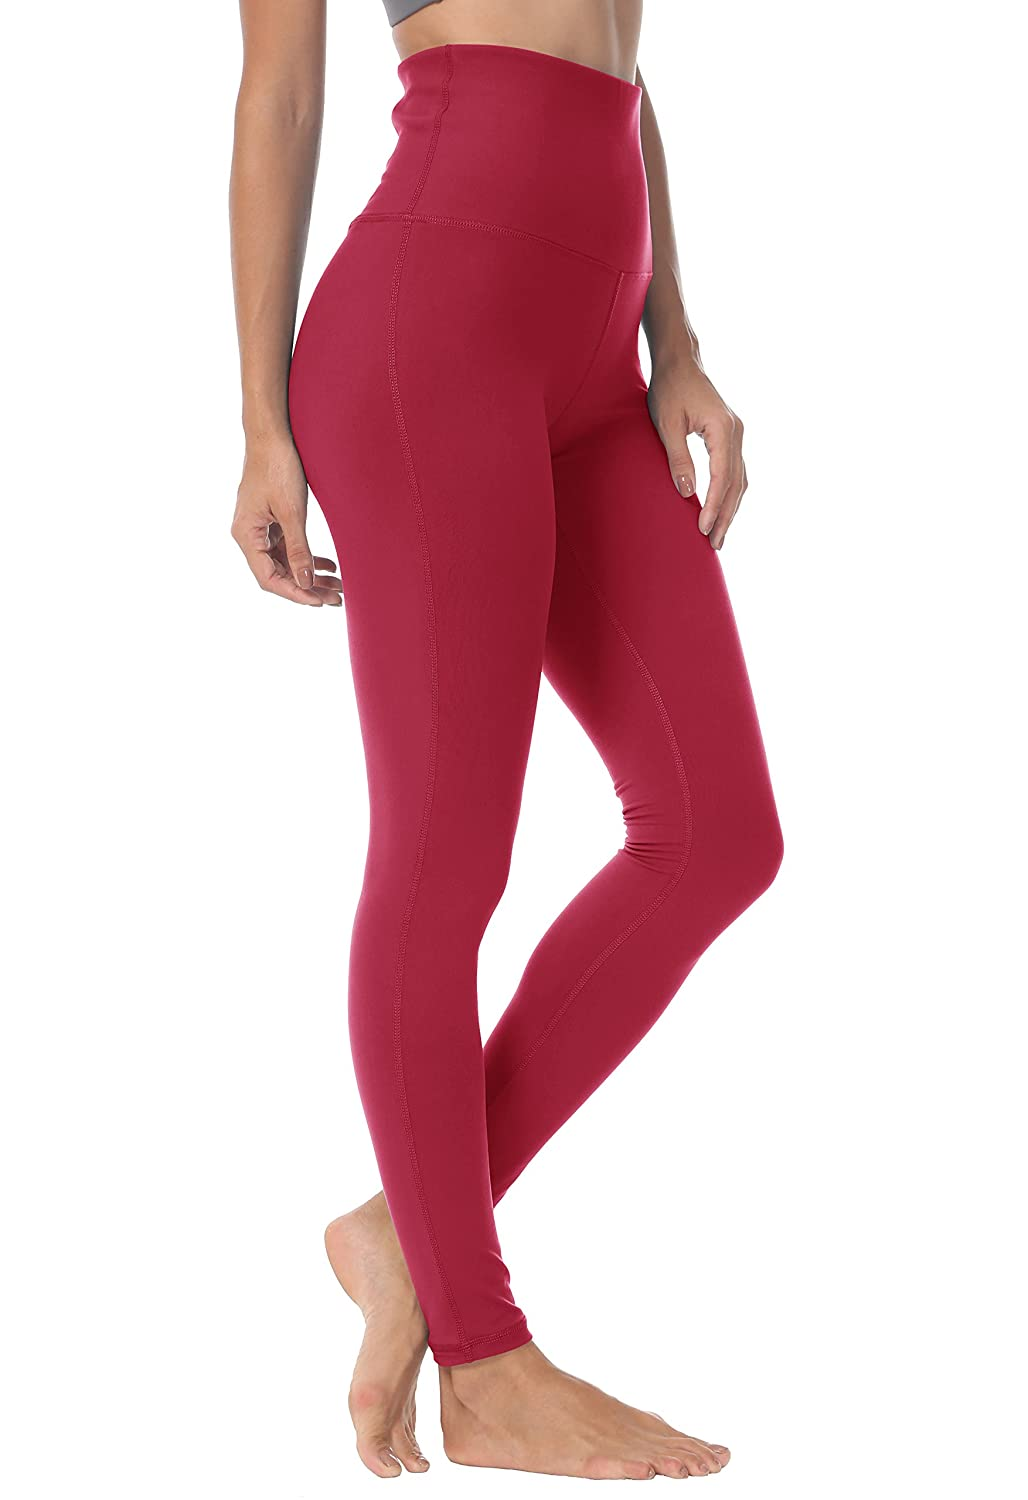 Queenie Ke Women Yoga Legging Power Flex High Waist Running Pants Workout Tights QK60129PANT